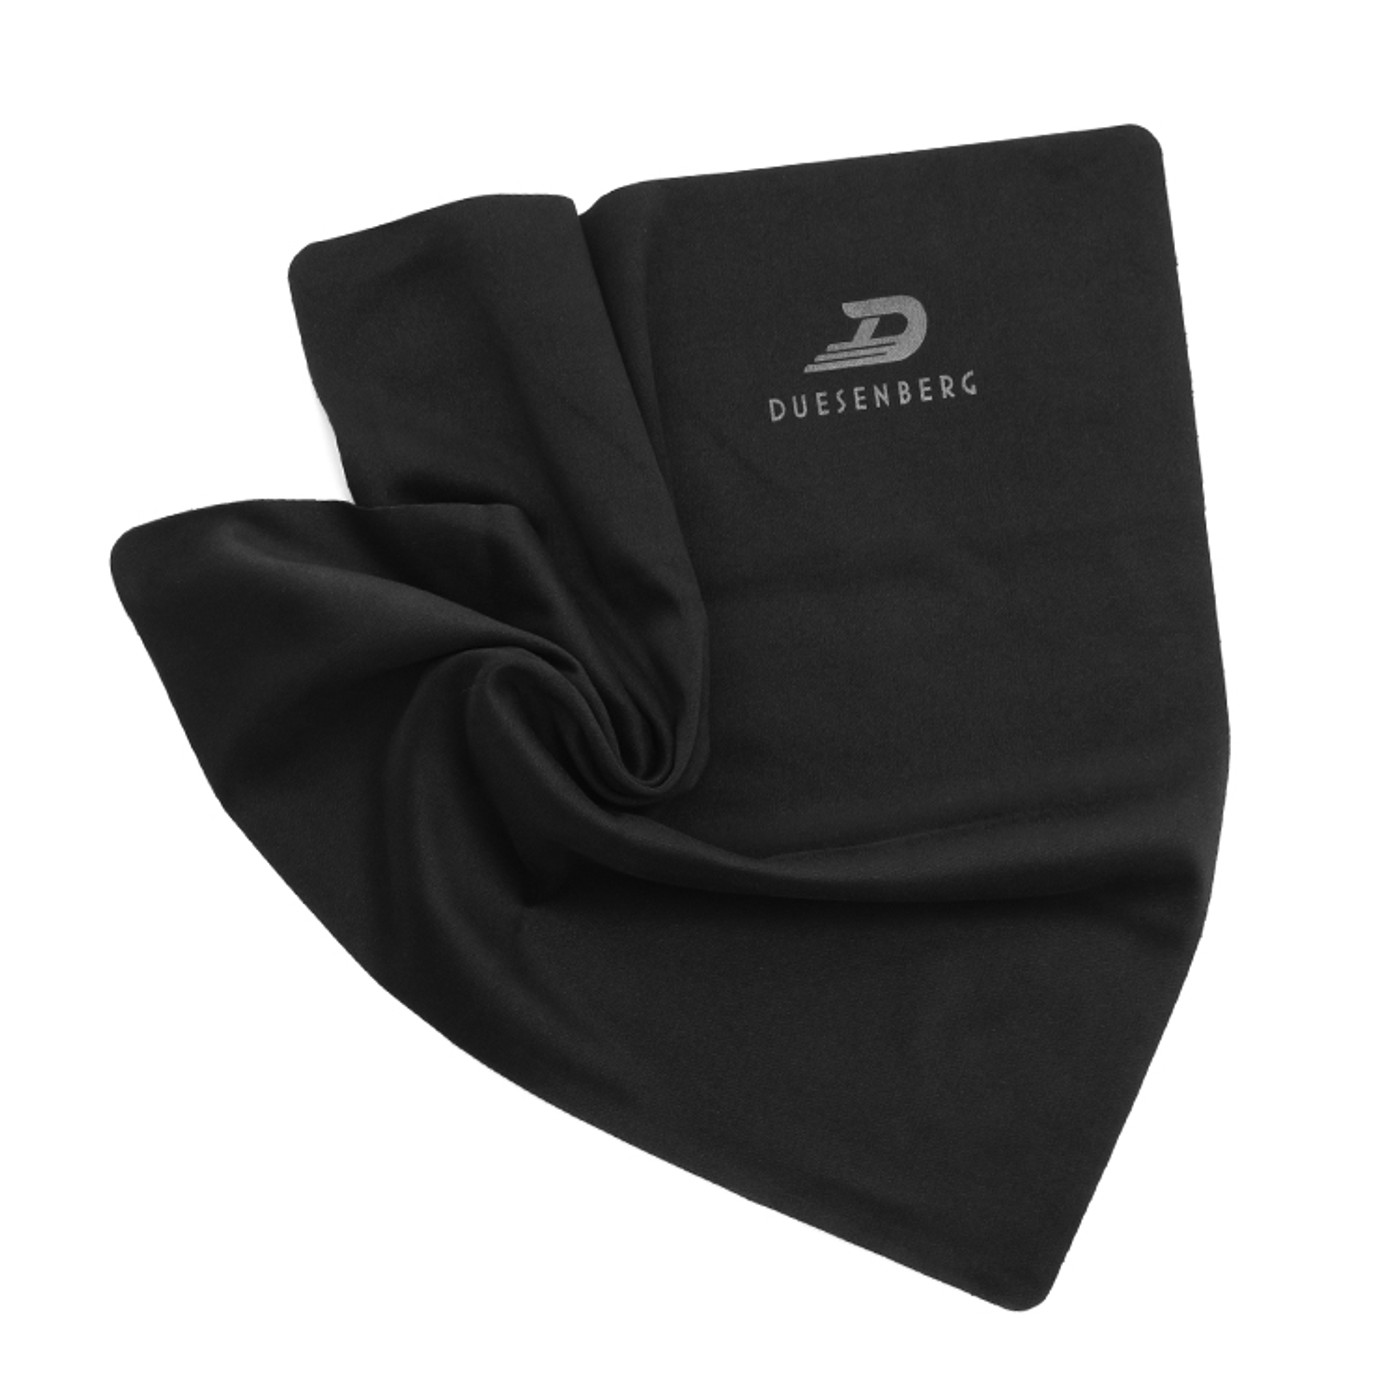 The Duesenberg polishing cloth.  Premium Microtex fabric measuring 30 x 30 cm. Perfectly suited for daily care and cleaning of your Instrument. Black. Duesenberg Quality.